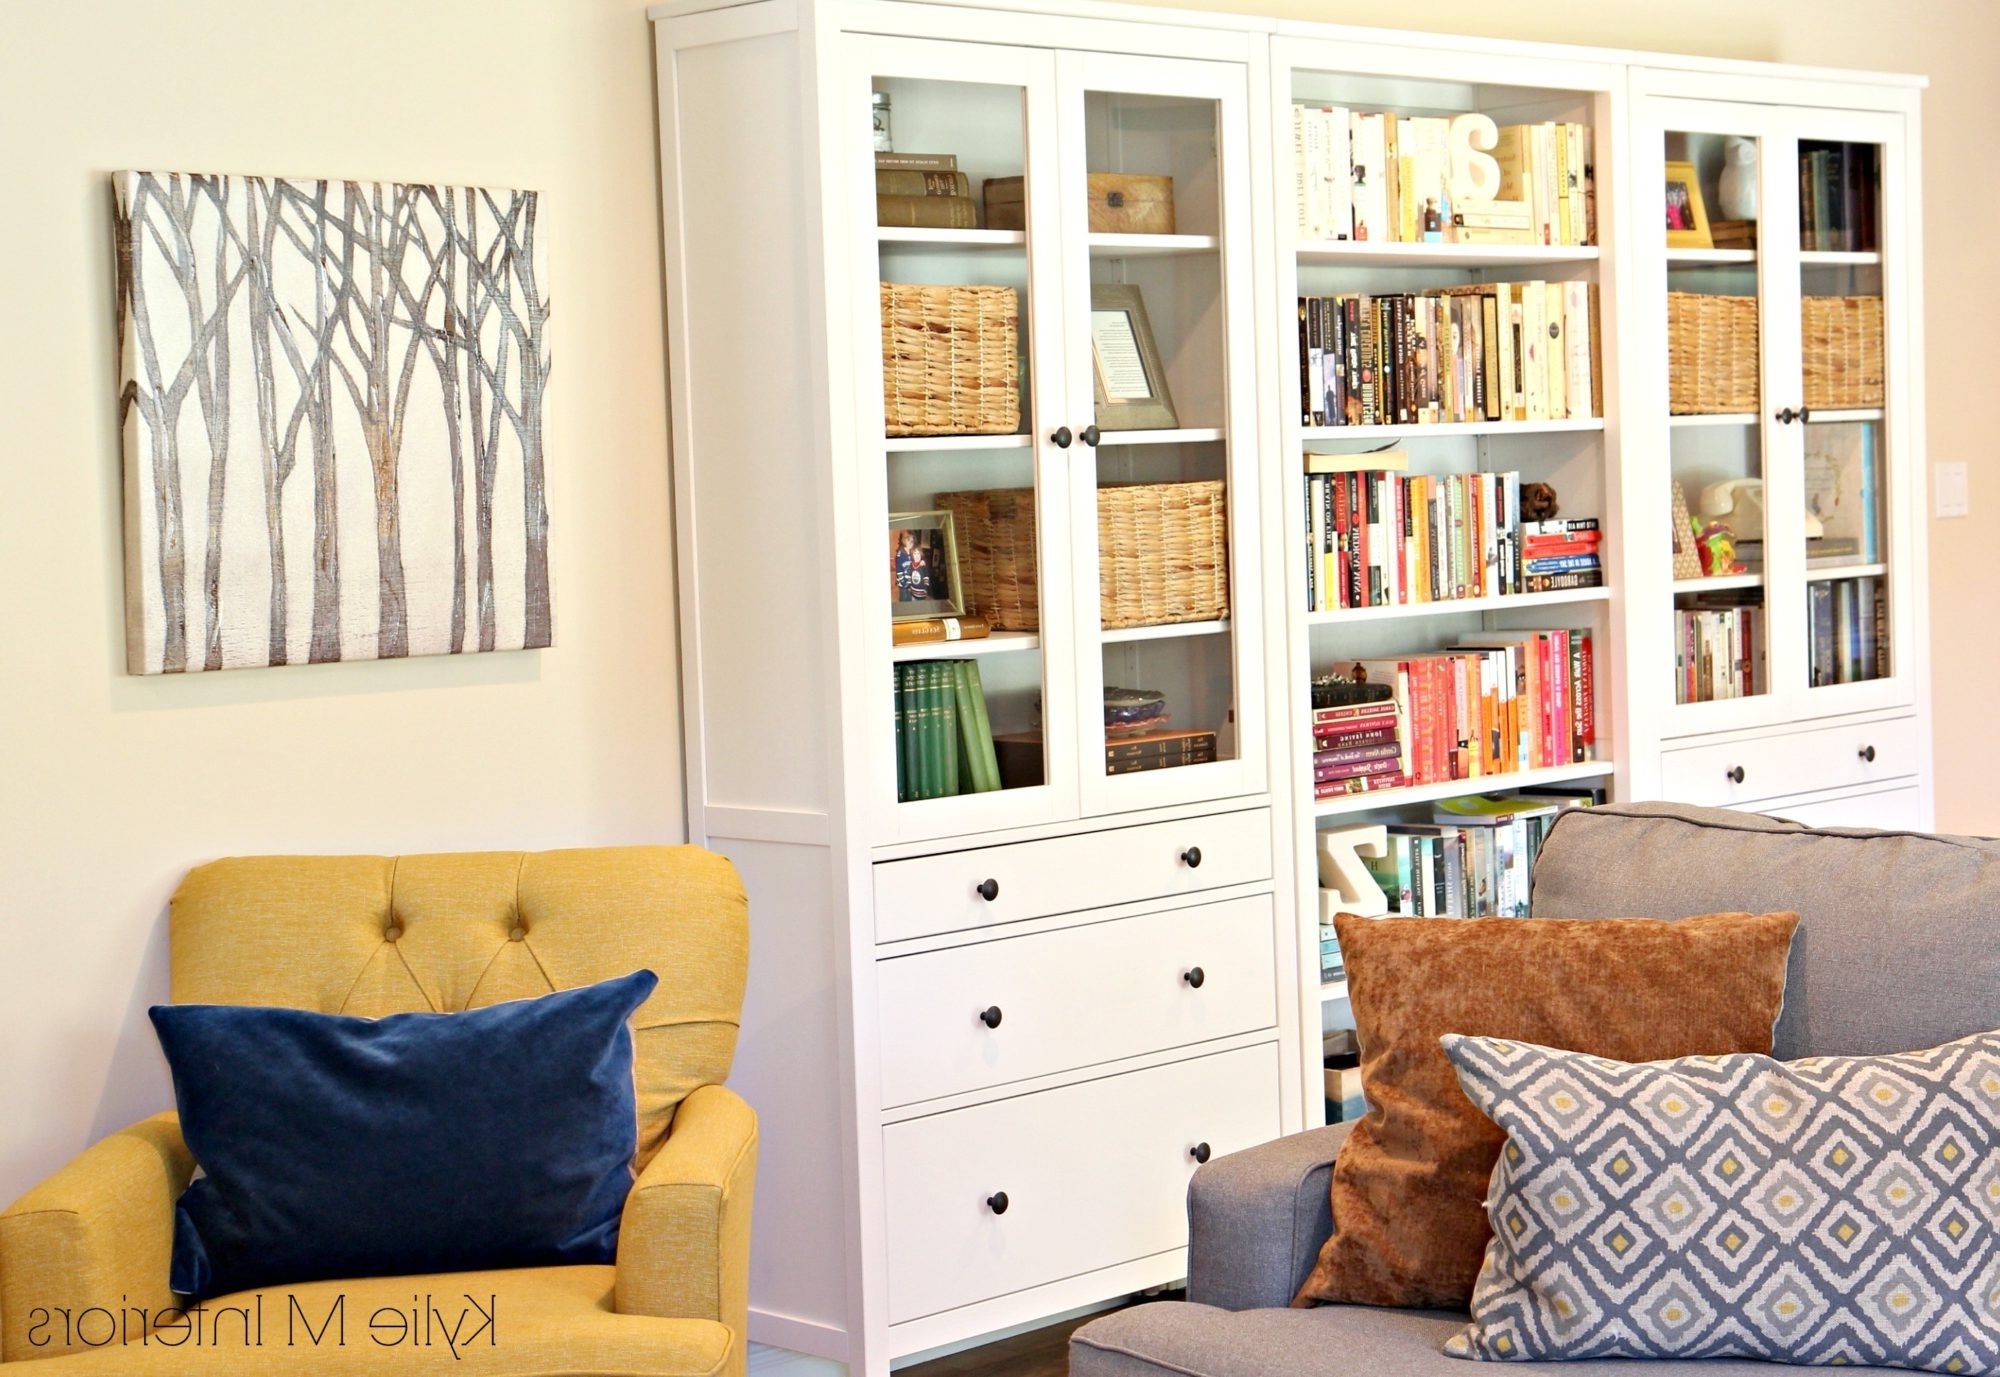 2018 Family Room With Ikea Hemnes Bookcase And Bookshelf (View 1 of 15)